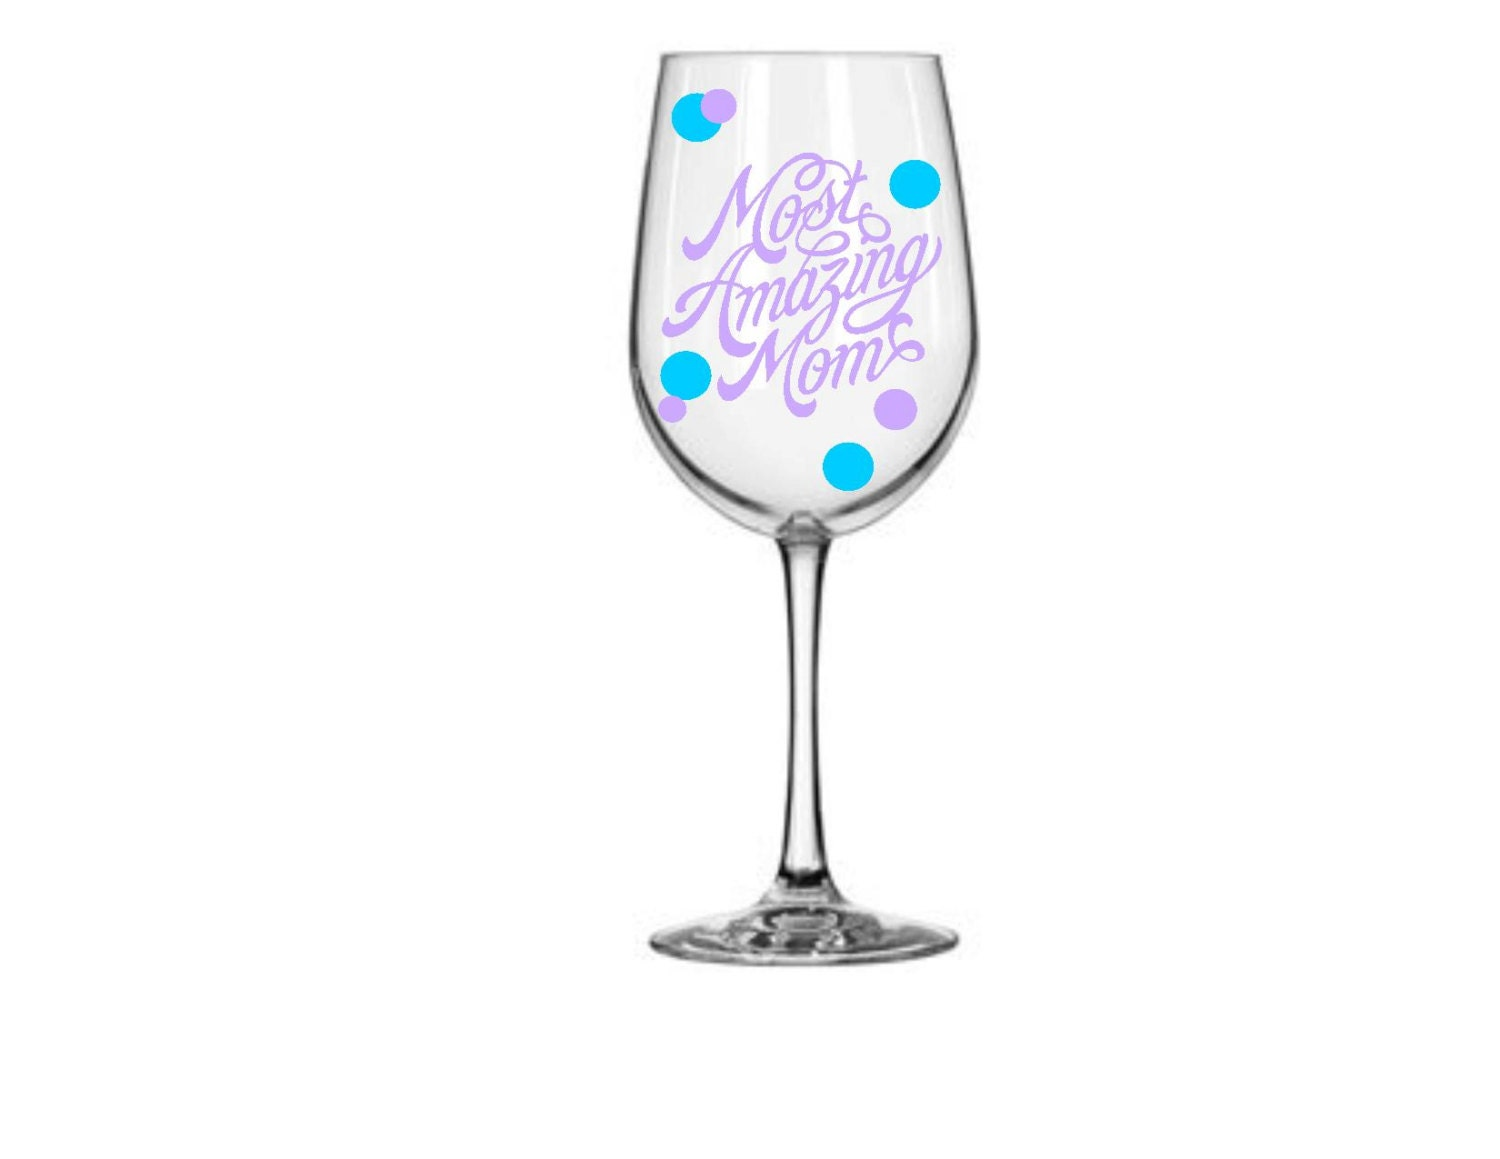 Most Amazing Mom Wine Glass 20 Oz Wine Glass Glitter Stems